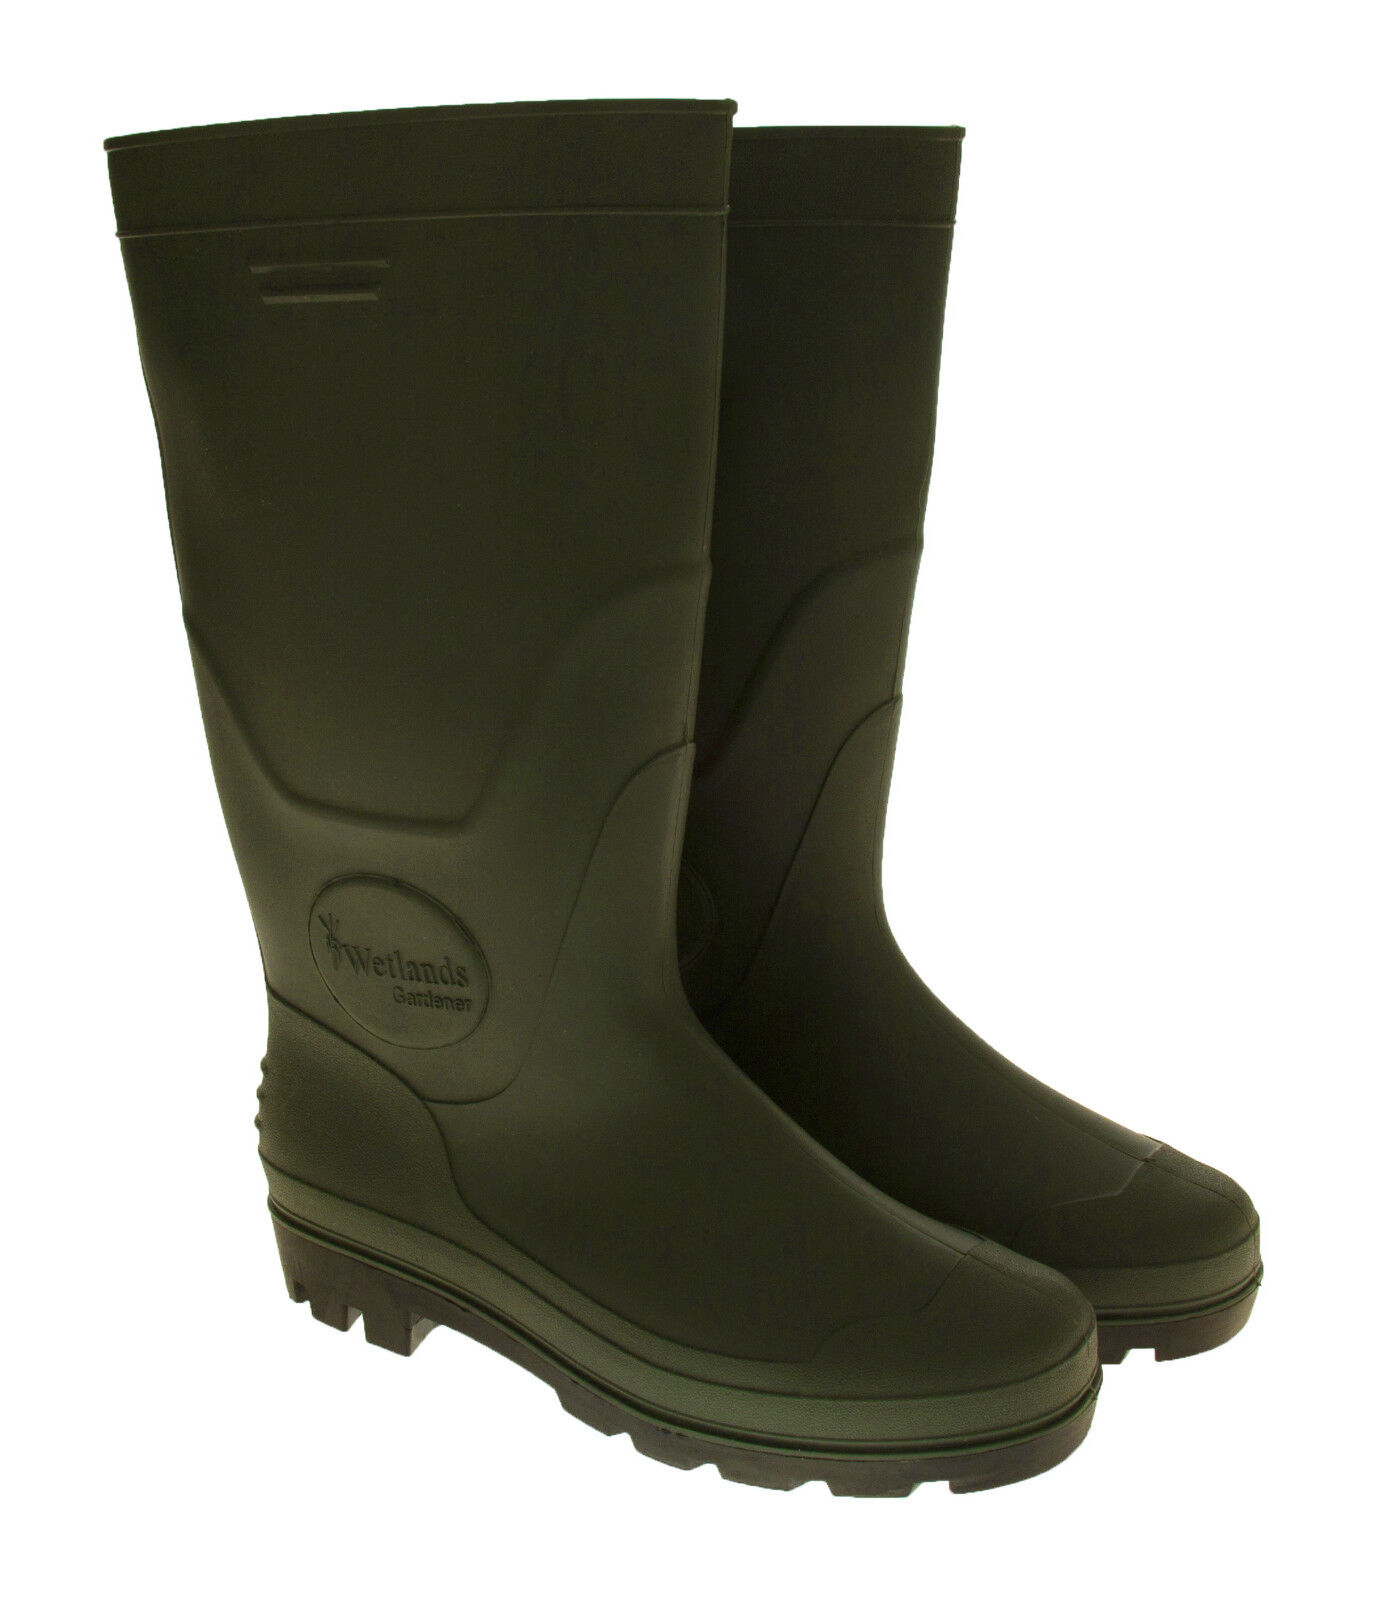 WOMANS WELLINGTON BOOTS GREEN GARDENER BY WETLANDS WELLIES